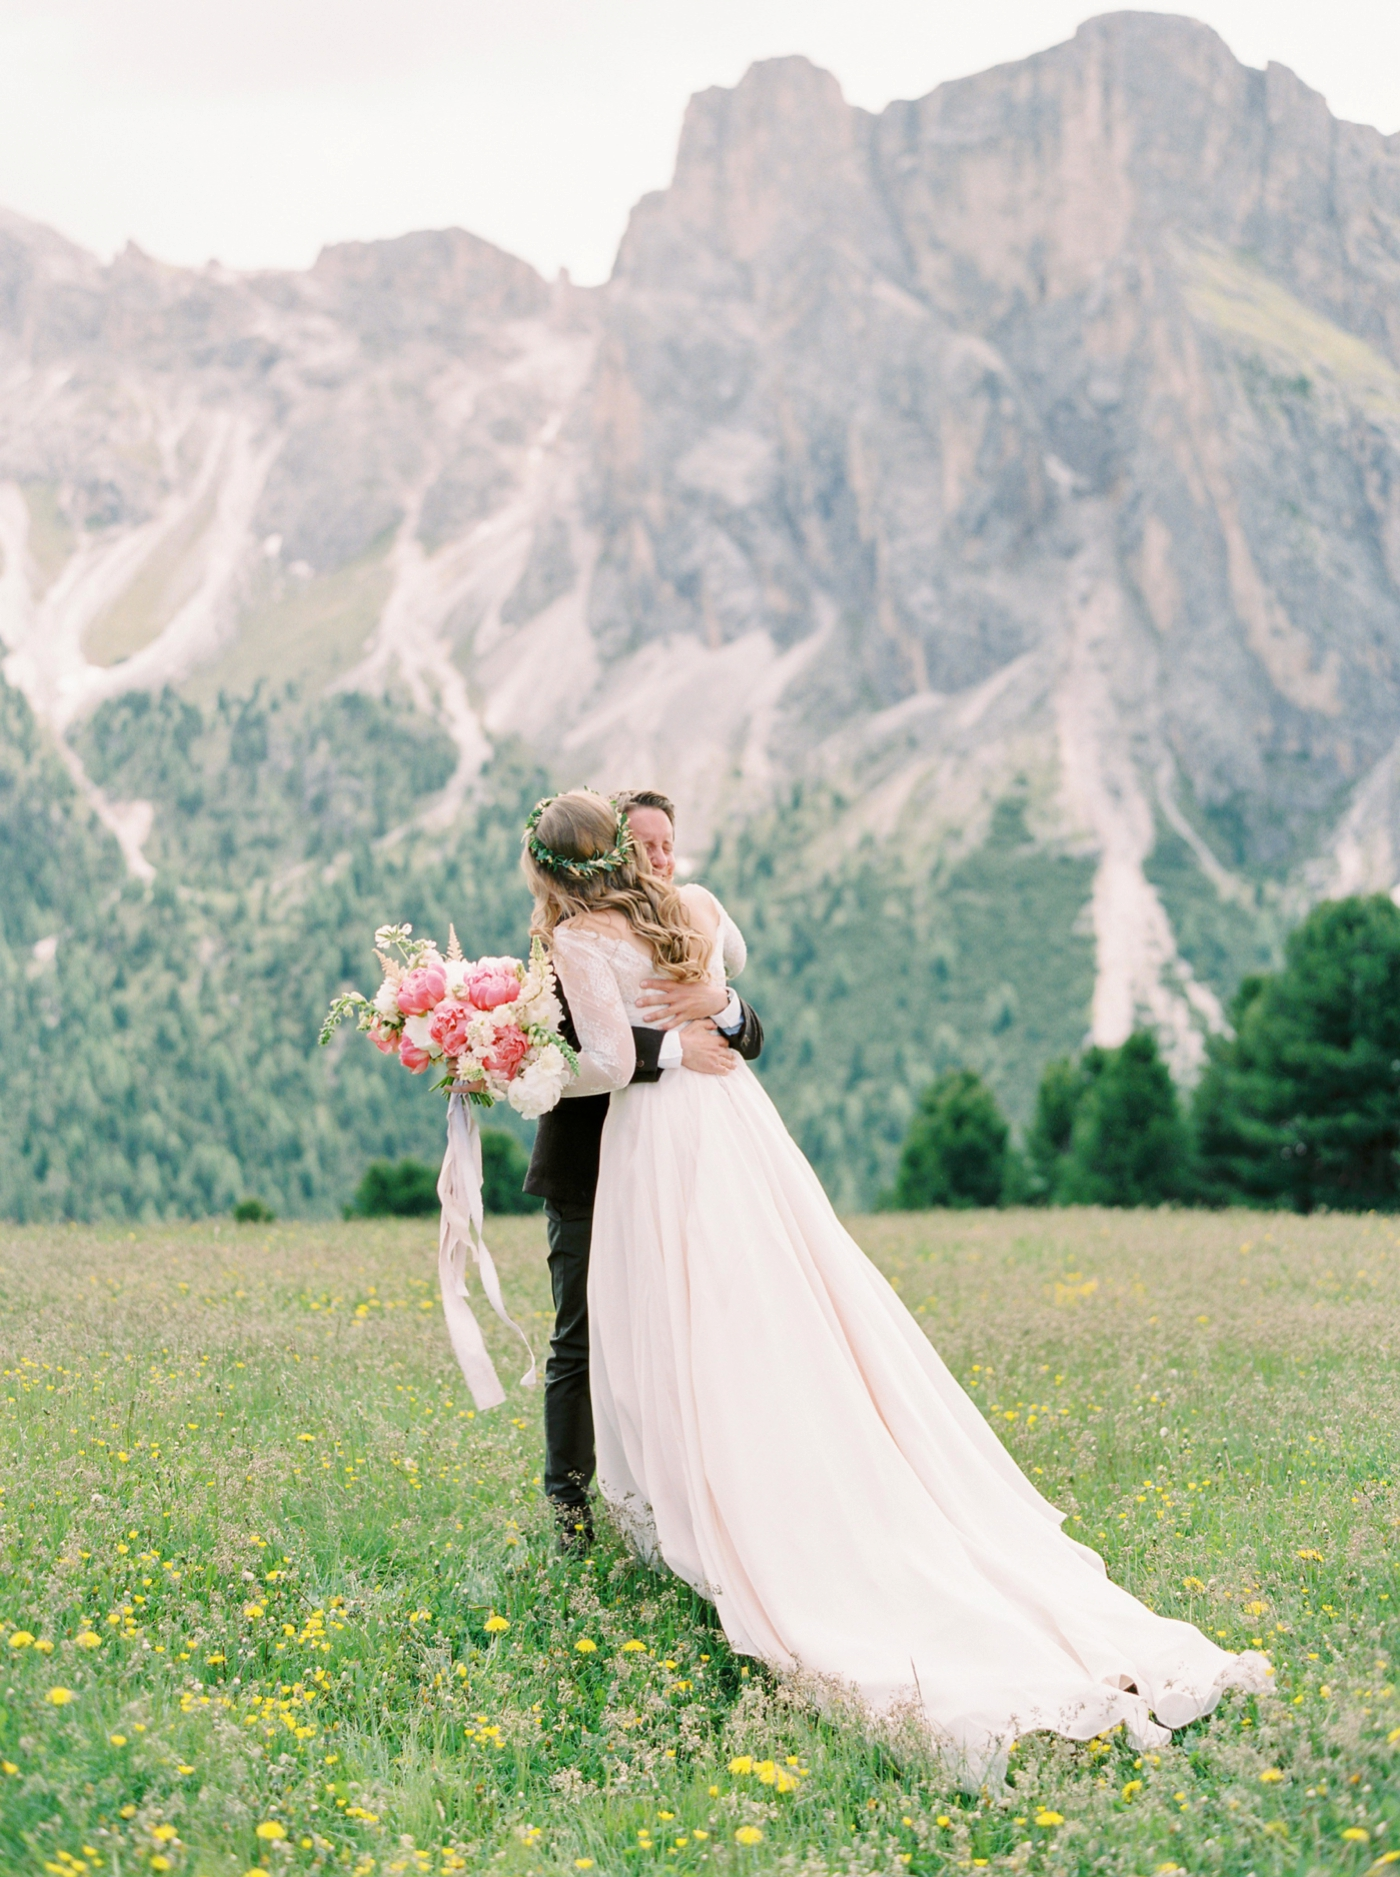 Italy wedding photographers | Dolomites mountain top wedding | pink and white peony bouquet | long sleeve flowing wedding dress | Bride and groom portrait first look | justine milton fine art film photographers